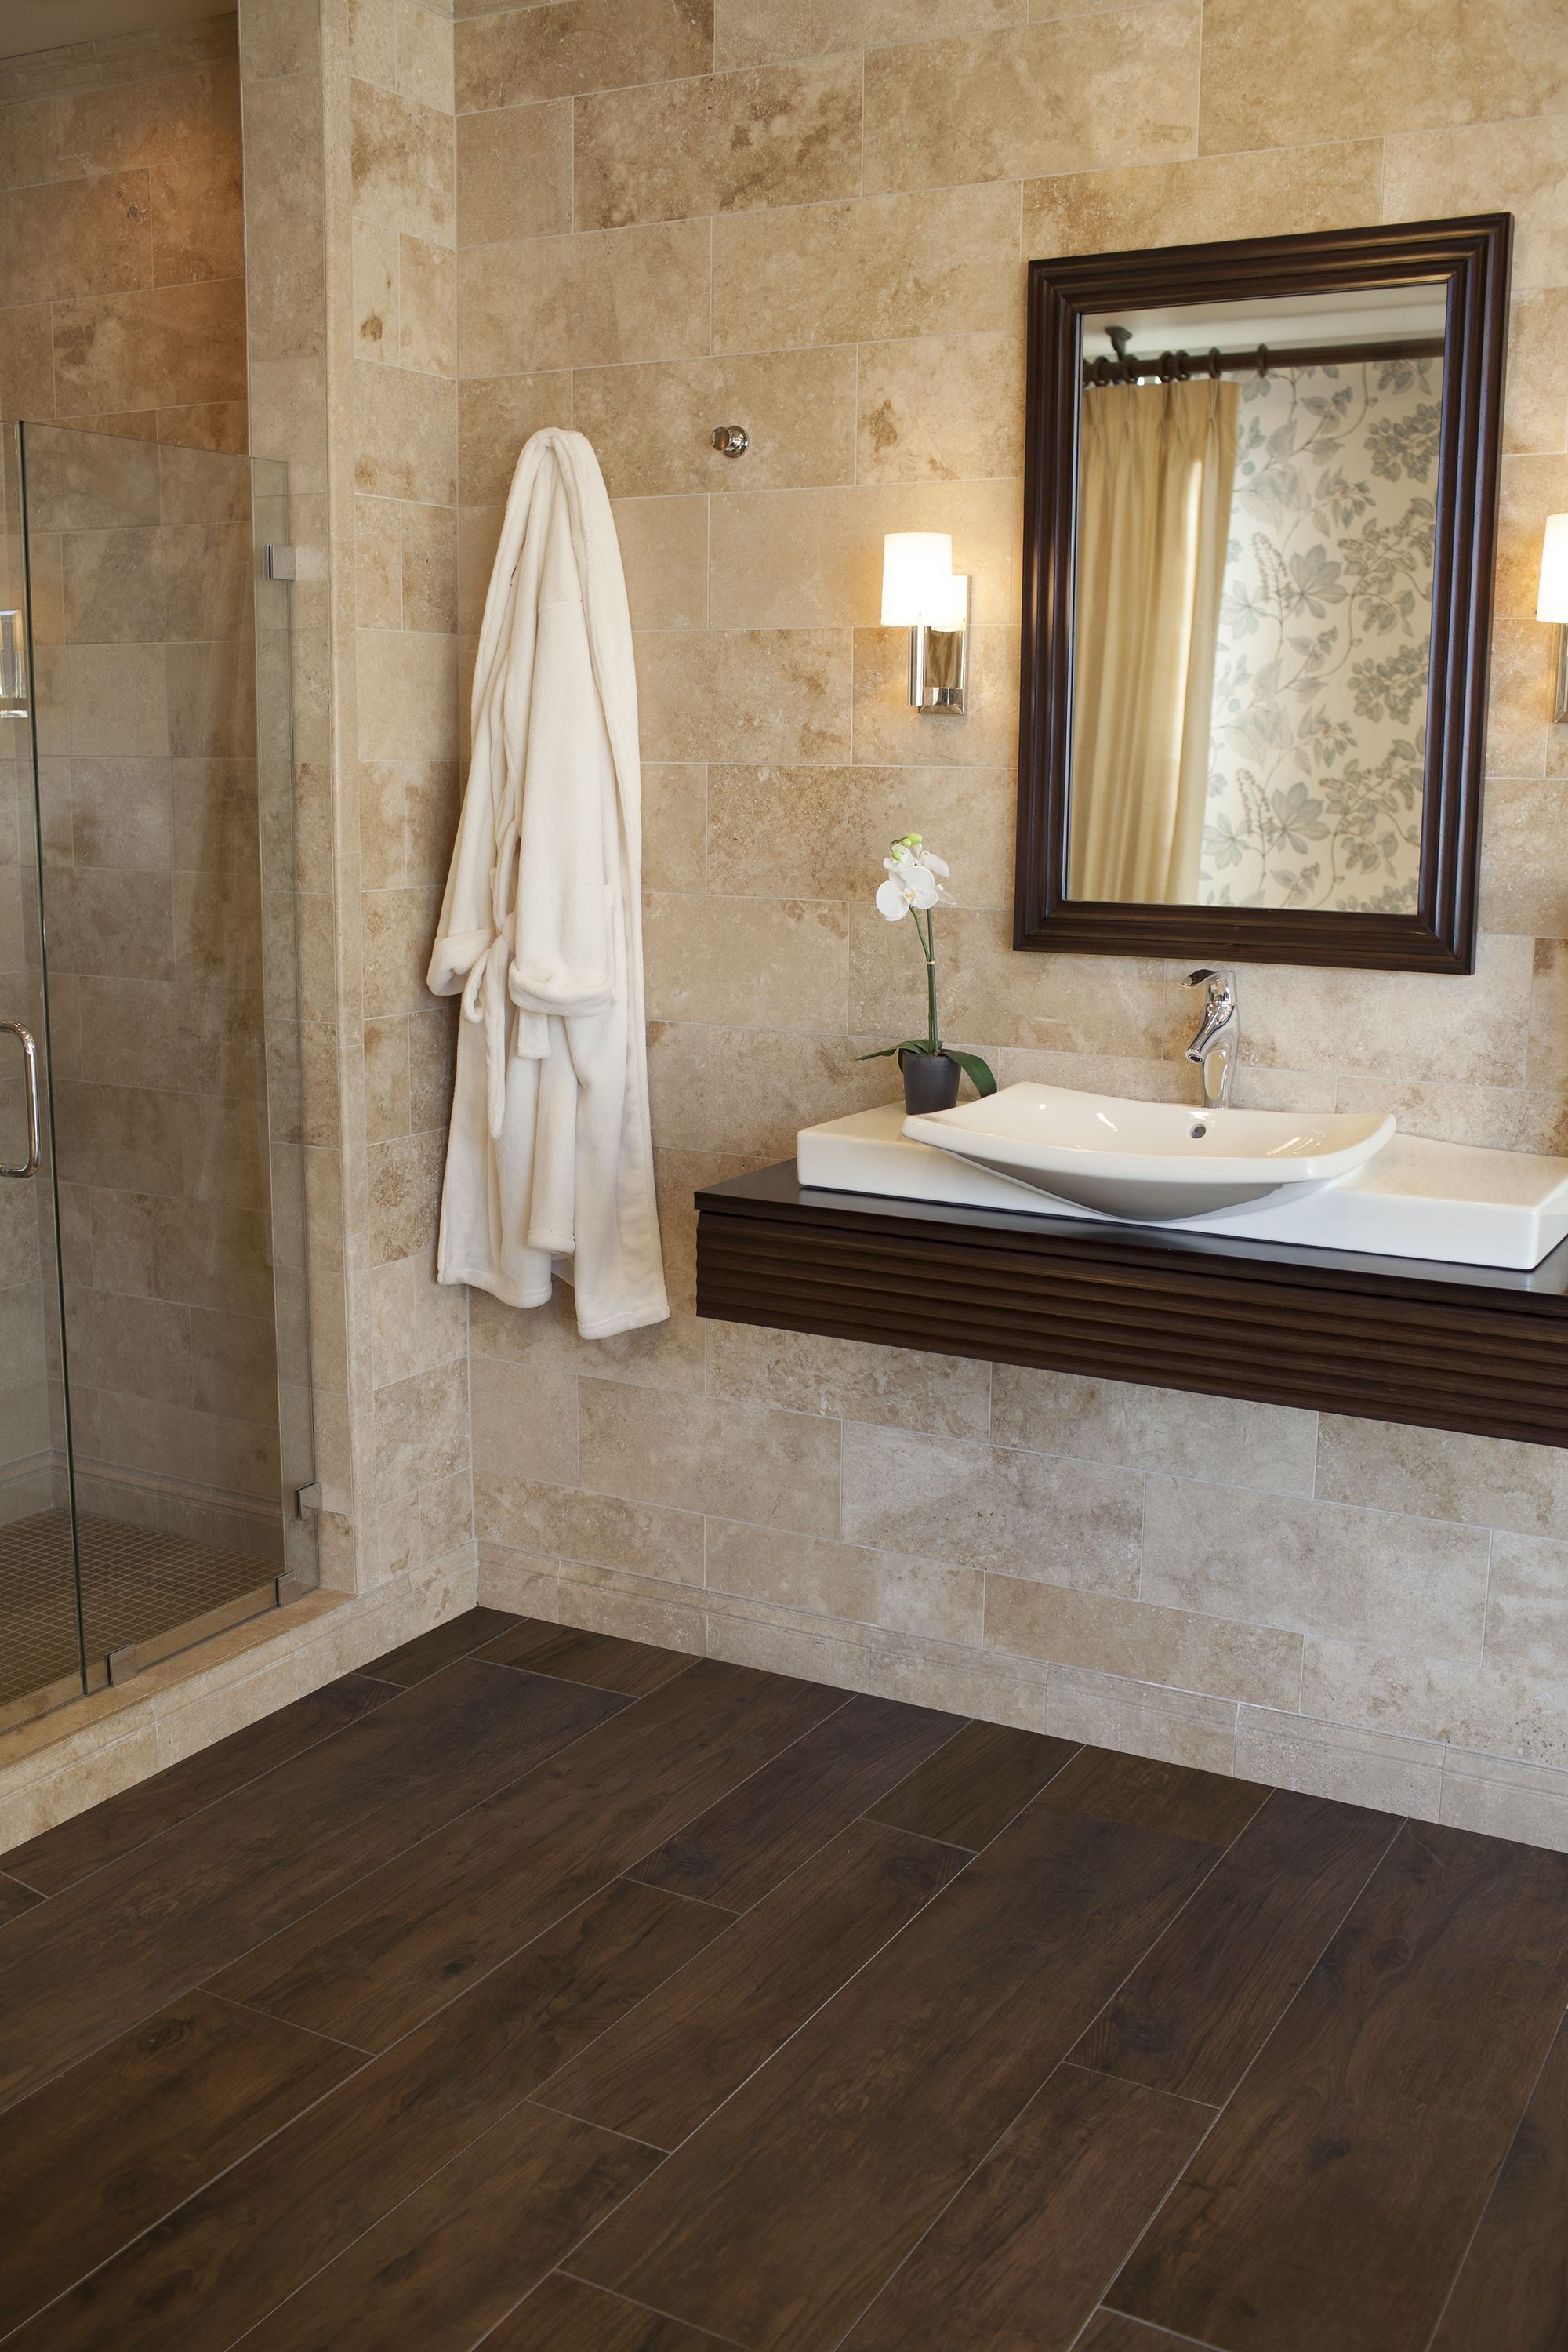 Casetta Walnut Wood Tile Tile Thetileshop Woodtile  Wood Tile Bathroom Wood Floor Bathroom